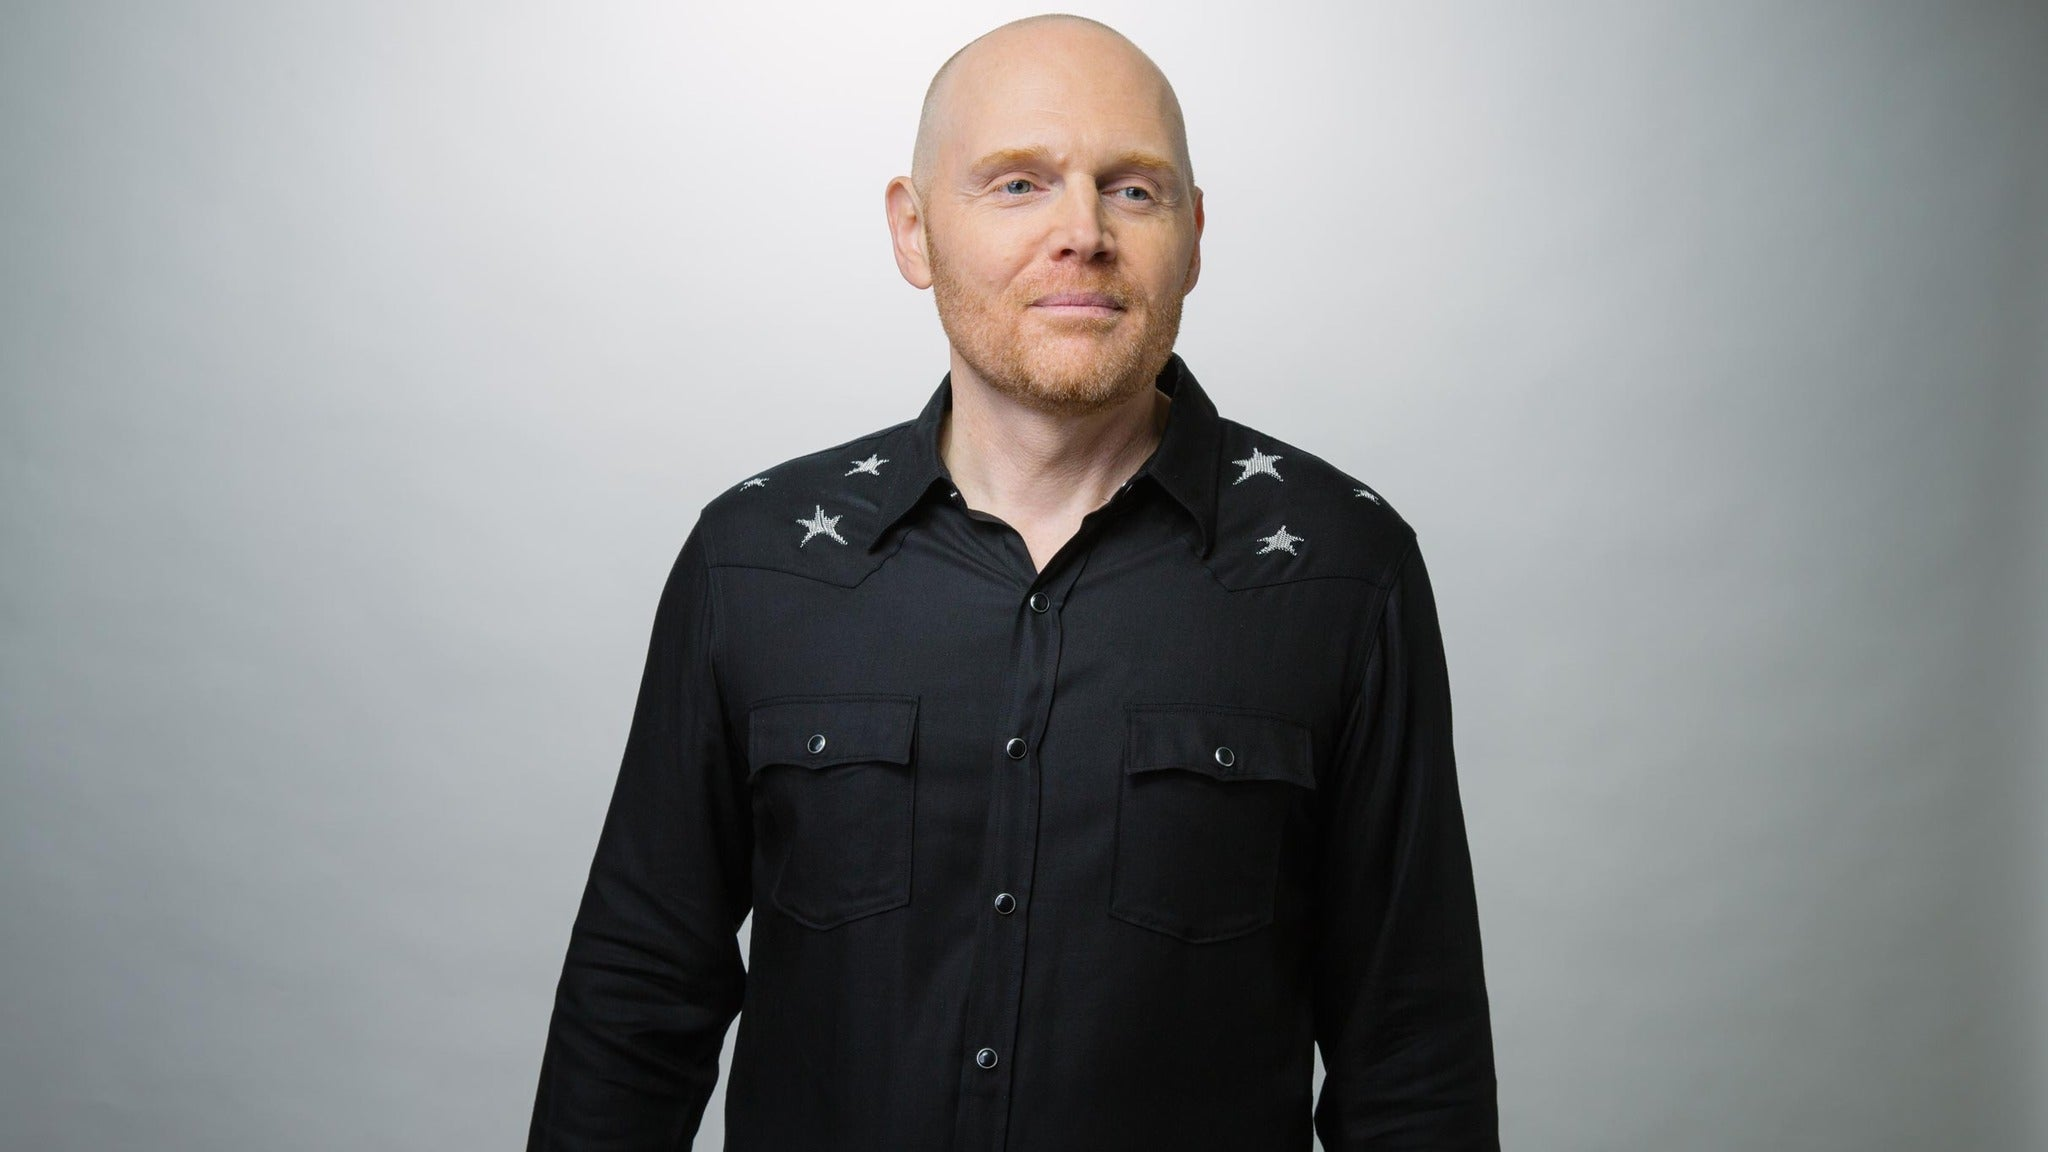 SORRY, THIS EVENT IS NO LONGER ACTIVE<br>Bill Burr at Cobb's Comedy Club - San Francisco, CA 94133